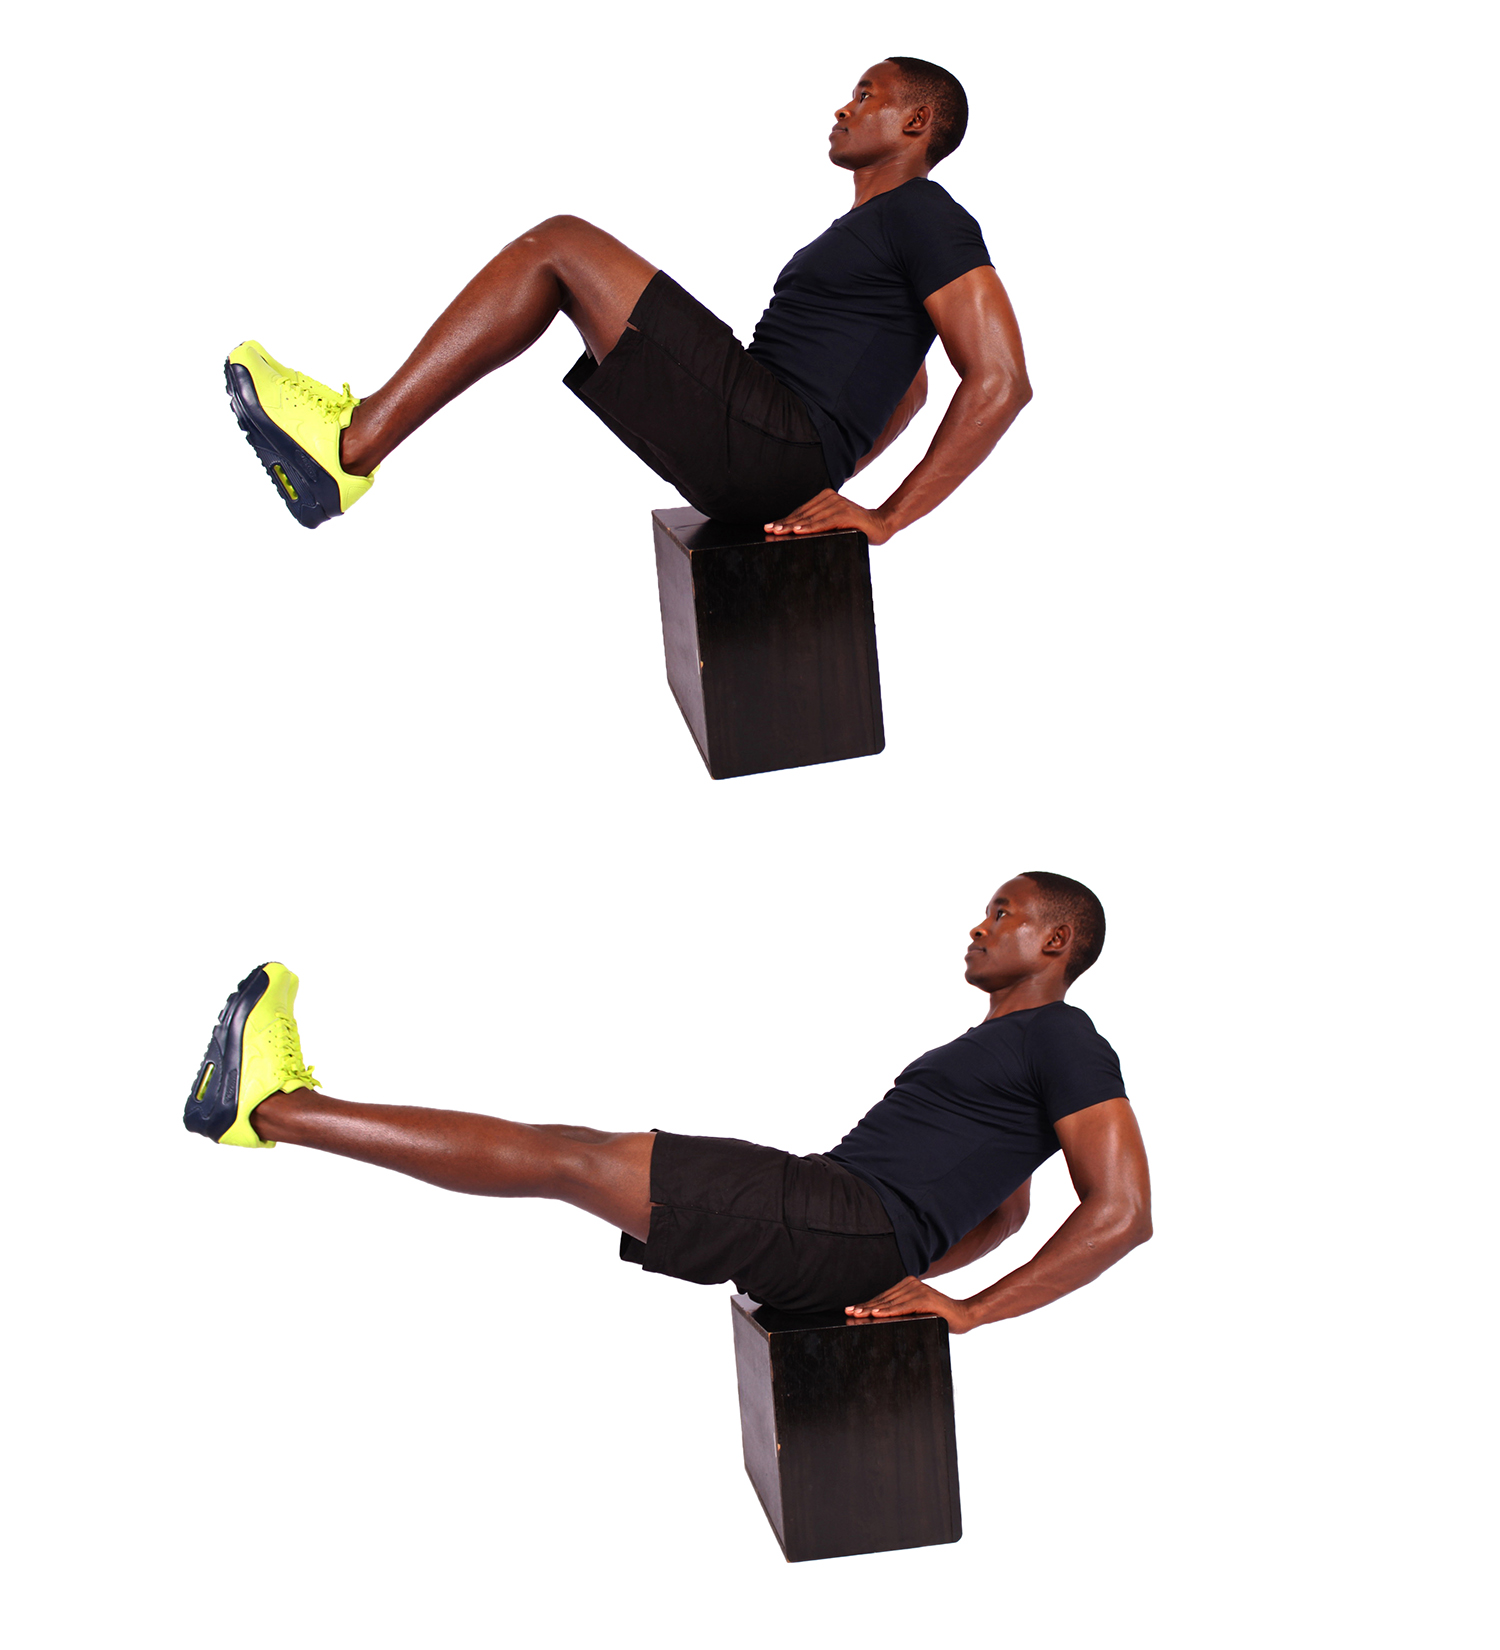 How to do v up crunches on step up box